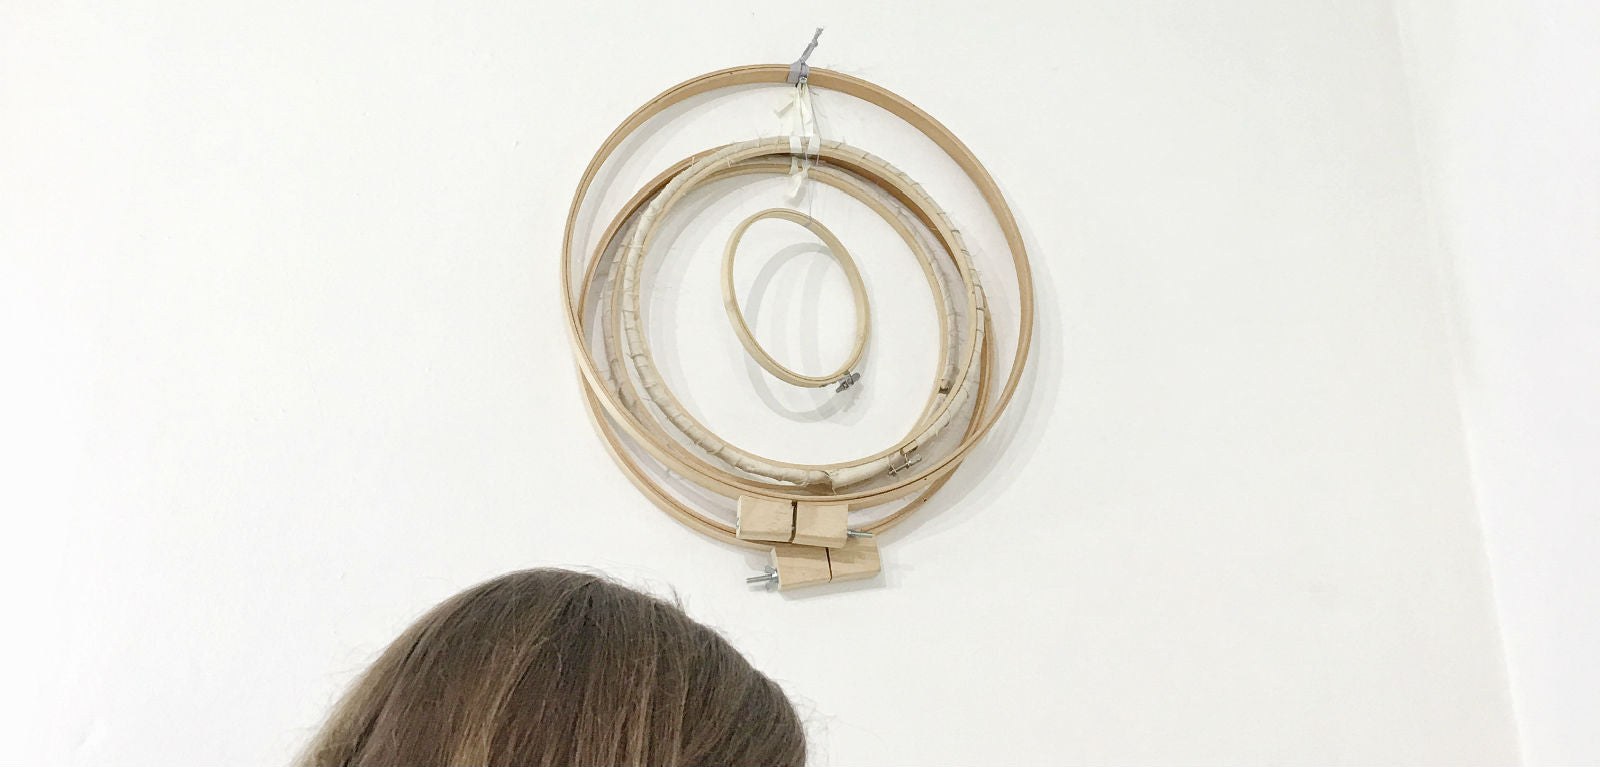 Tools - Embroidery Hoops